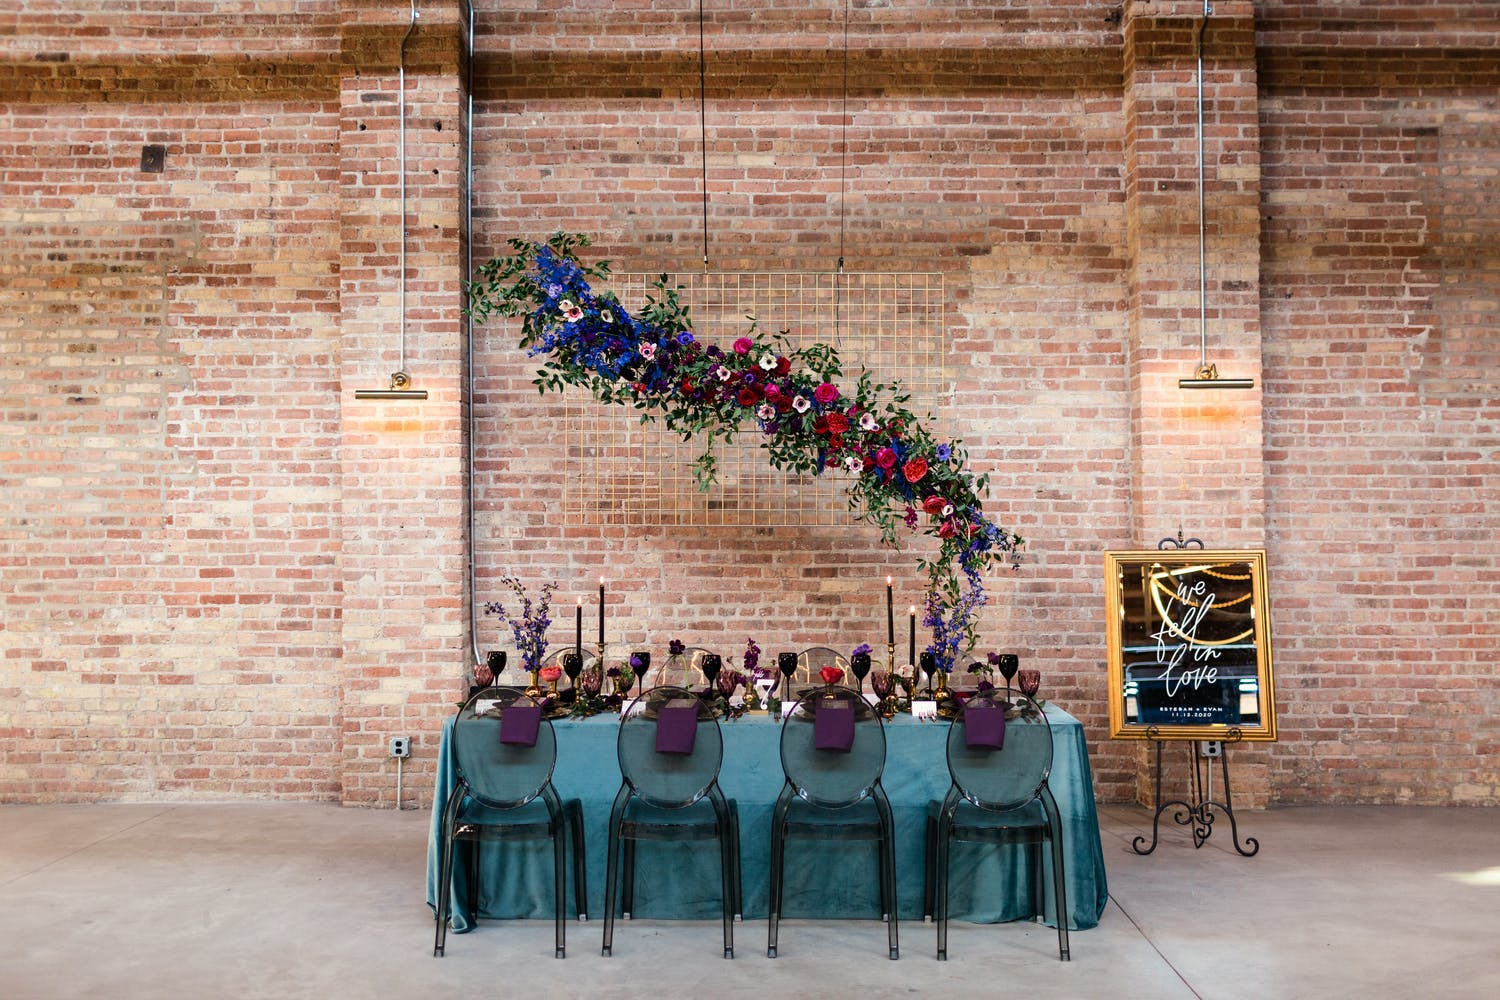 Minimalist wedding at WildmanBT with floating floral installation over tablescape in moody colors   PartySlate